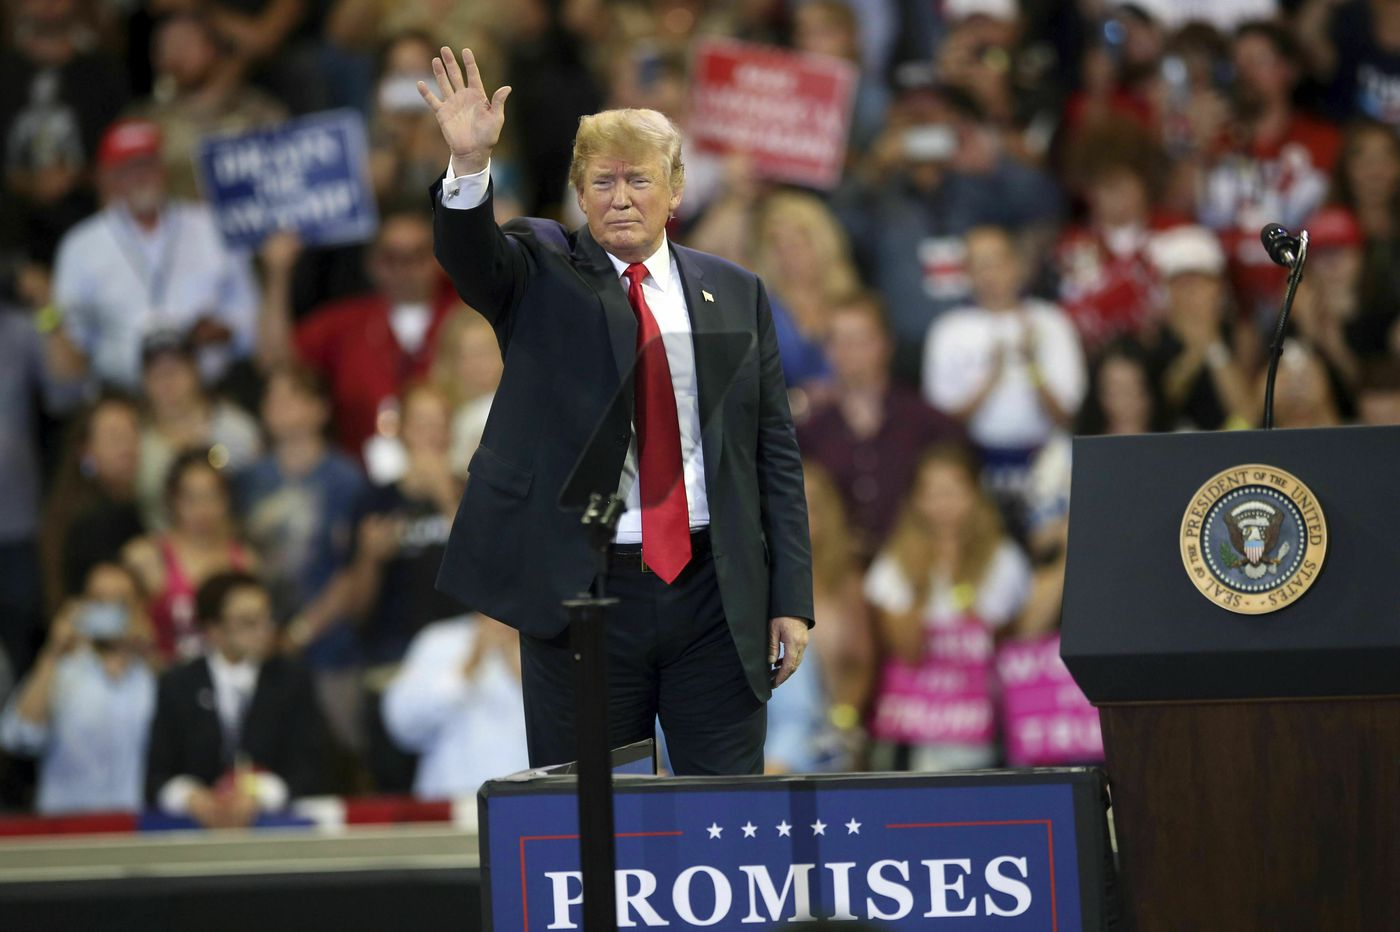 President Trump focuses on divisive messages as 2020 reelection bid takes shape